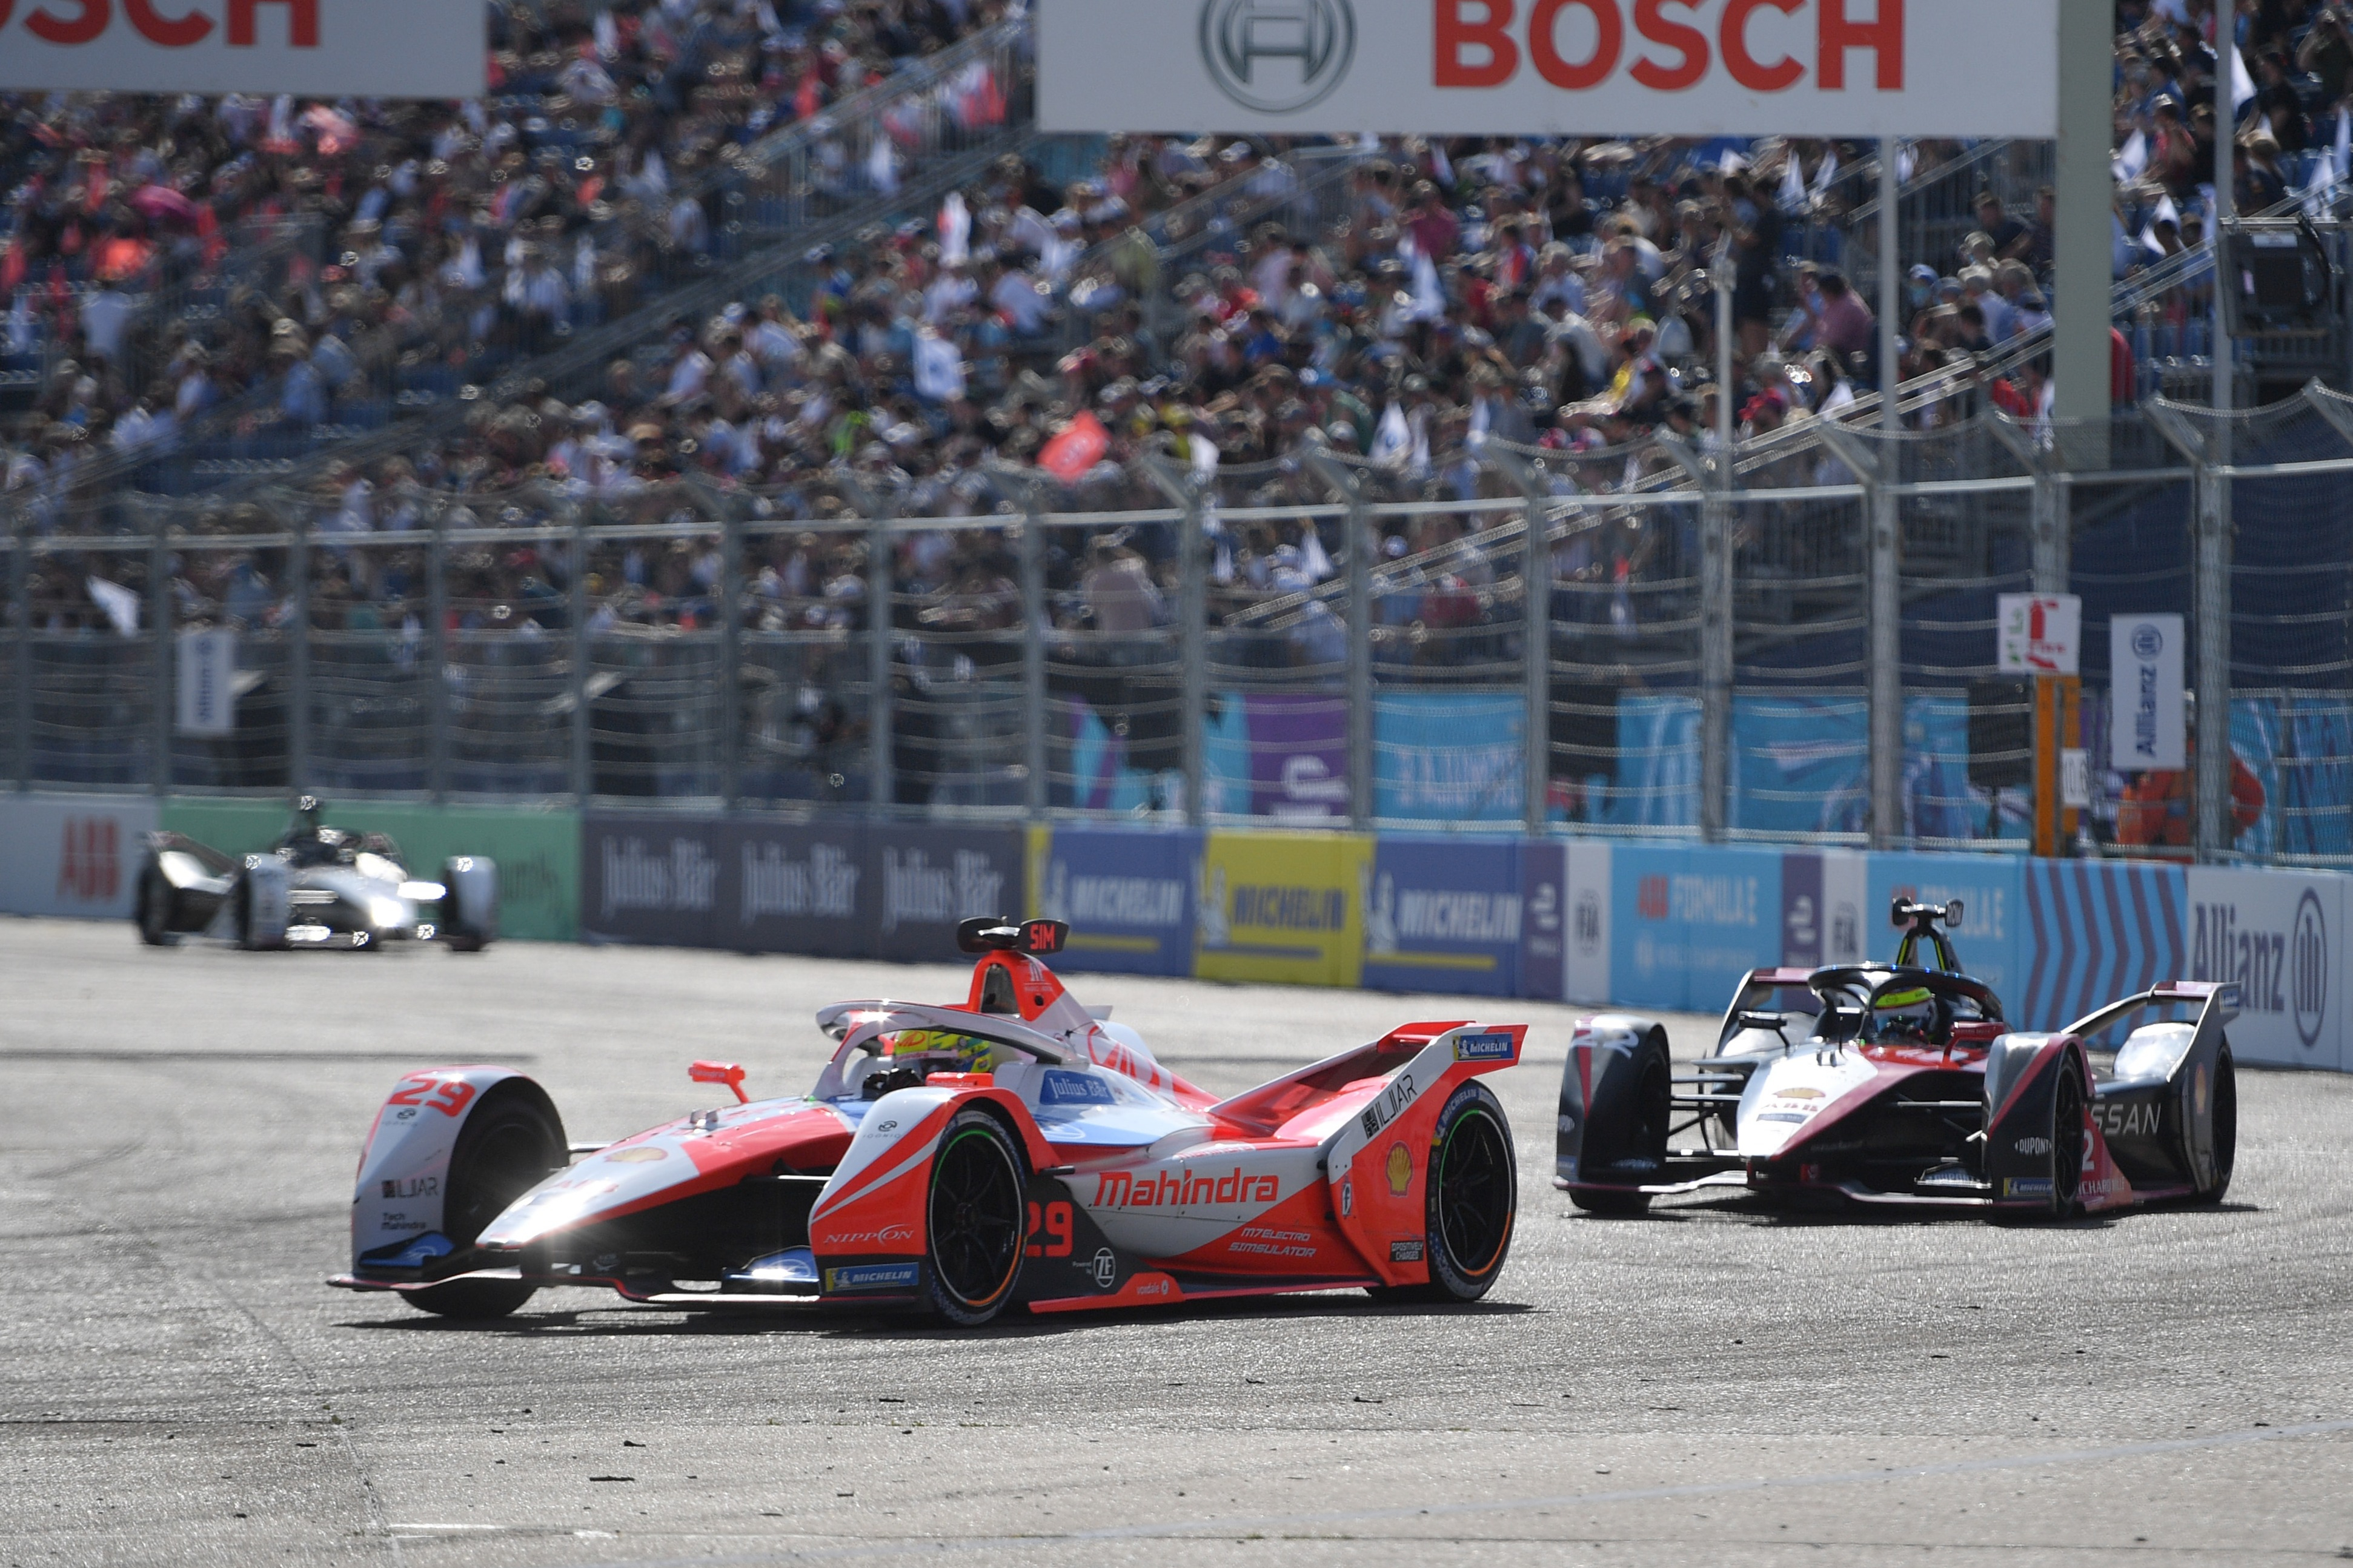 Mahindra driver Alexander Sims leads Nissan e.dams' Oliver Rowland in Berlin. The two will be team-mates next year